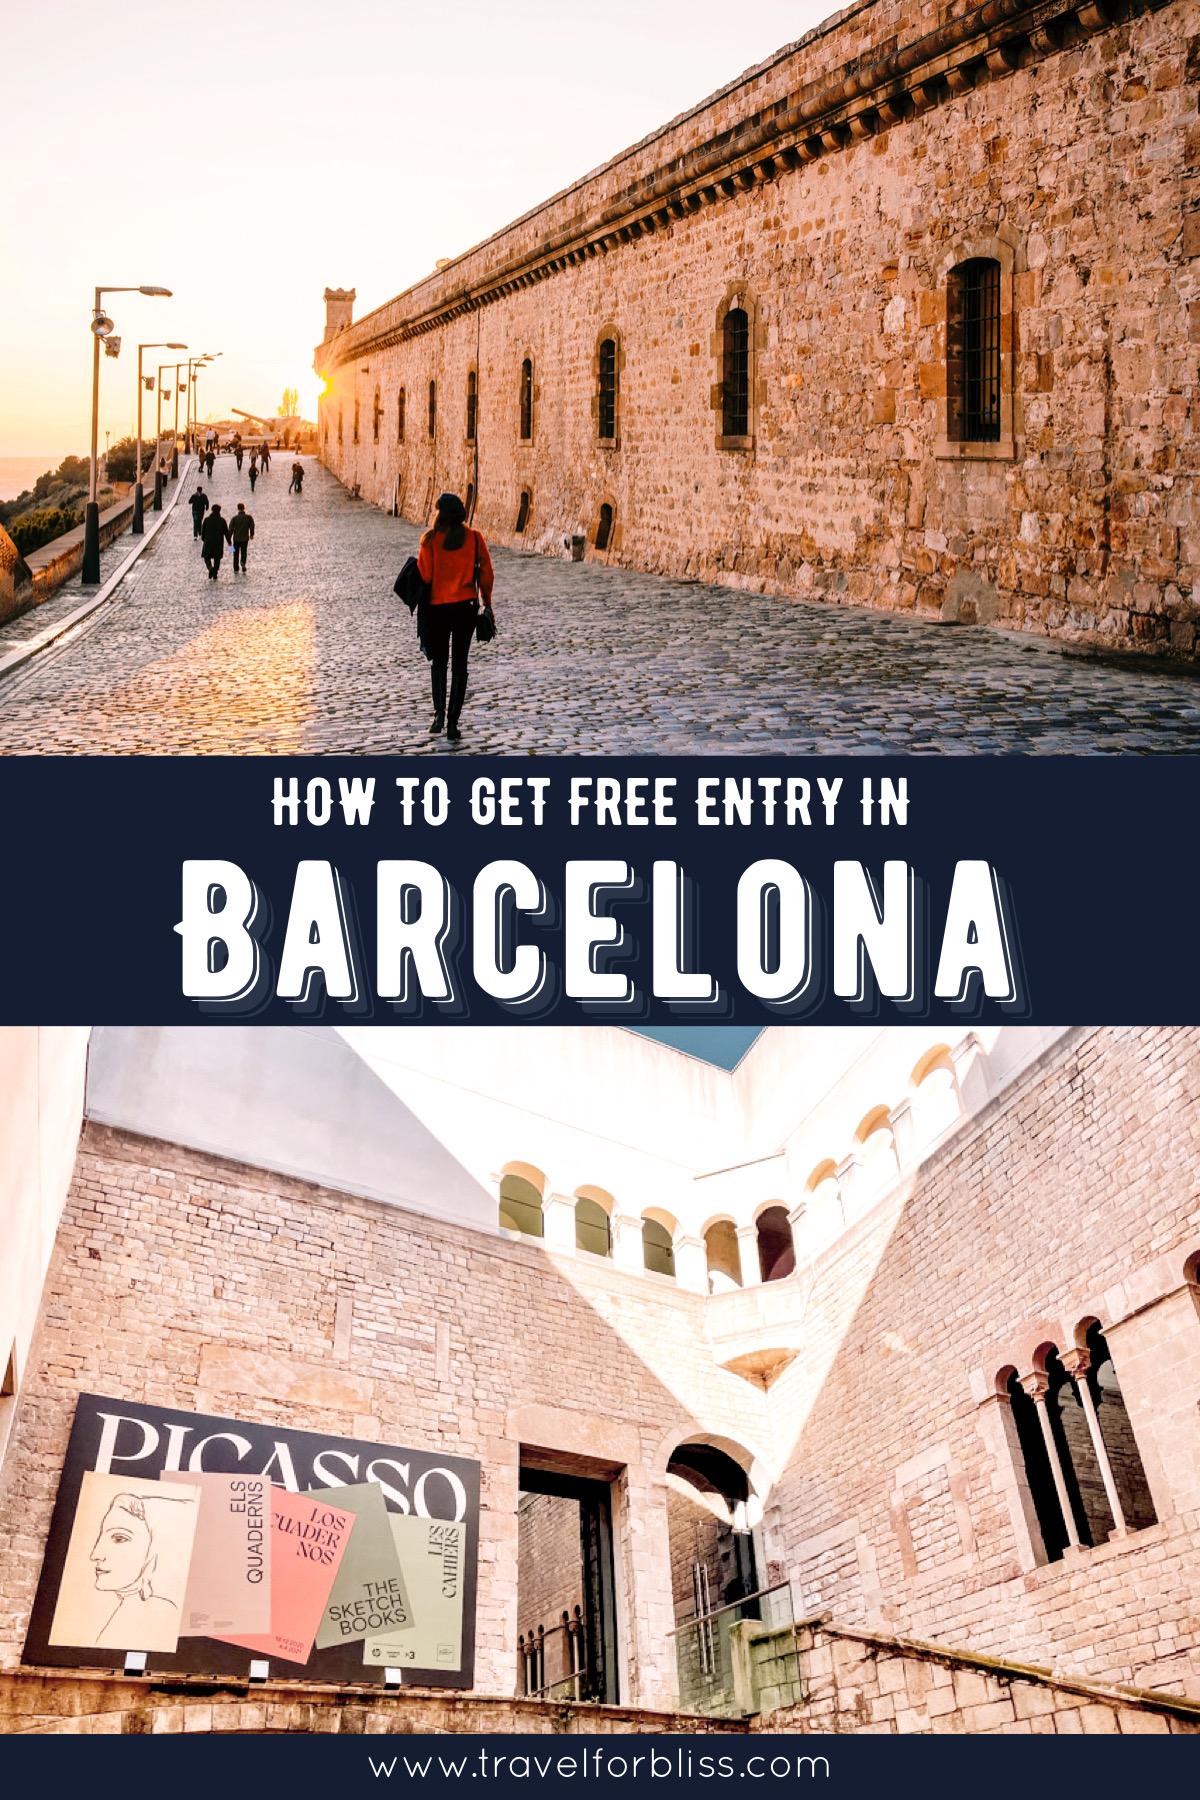 How To Get Free Entry In Barcelona. If you're looking to save money then make sure you check out this guide. This explains how to get free entry into attractions you usually have to pay for.